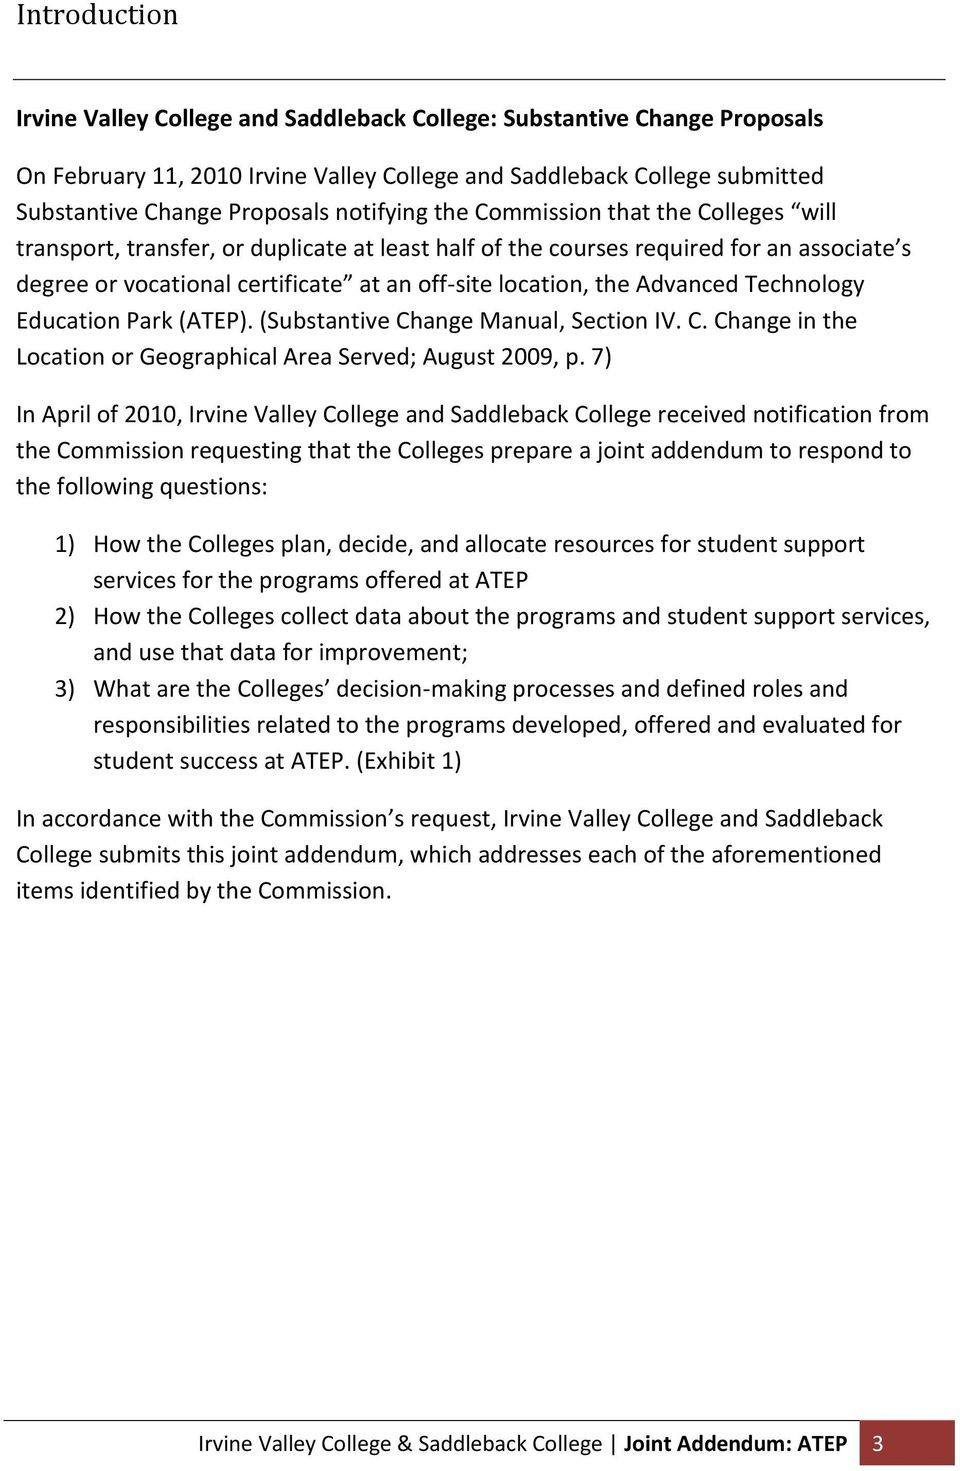 the Advanced Technology Education Park (ATEP). (Substantive Change Manual, Section IV. C. Change in the Location or Geographical Area Served; August 2009, p.